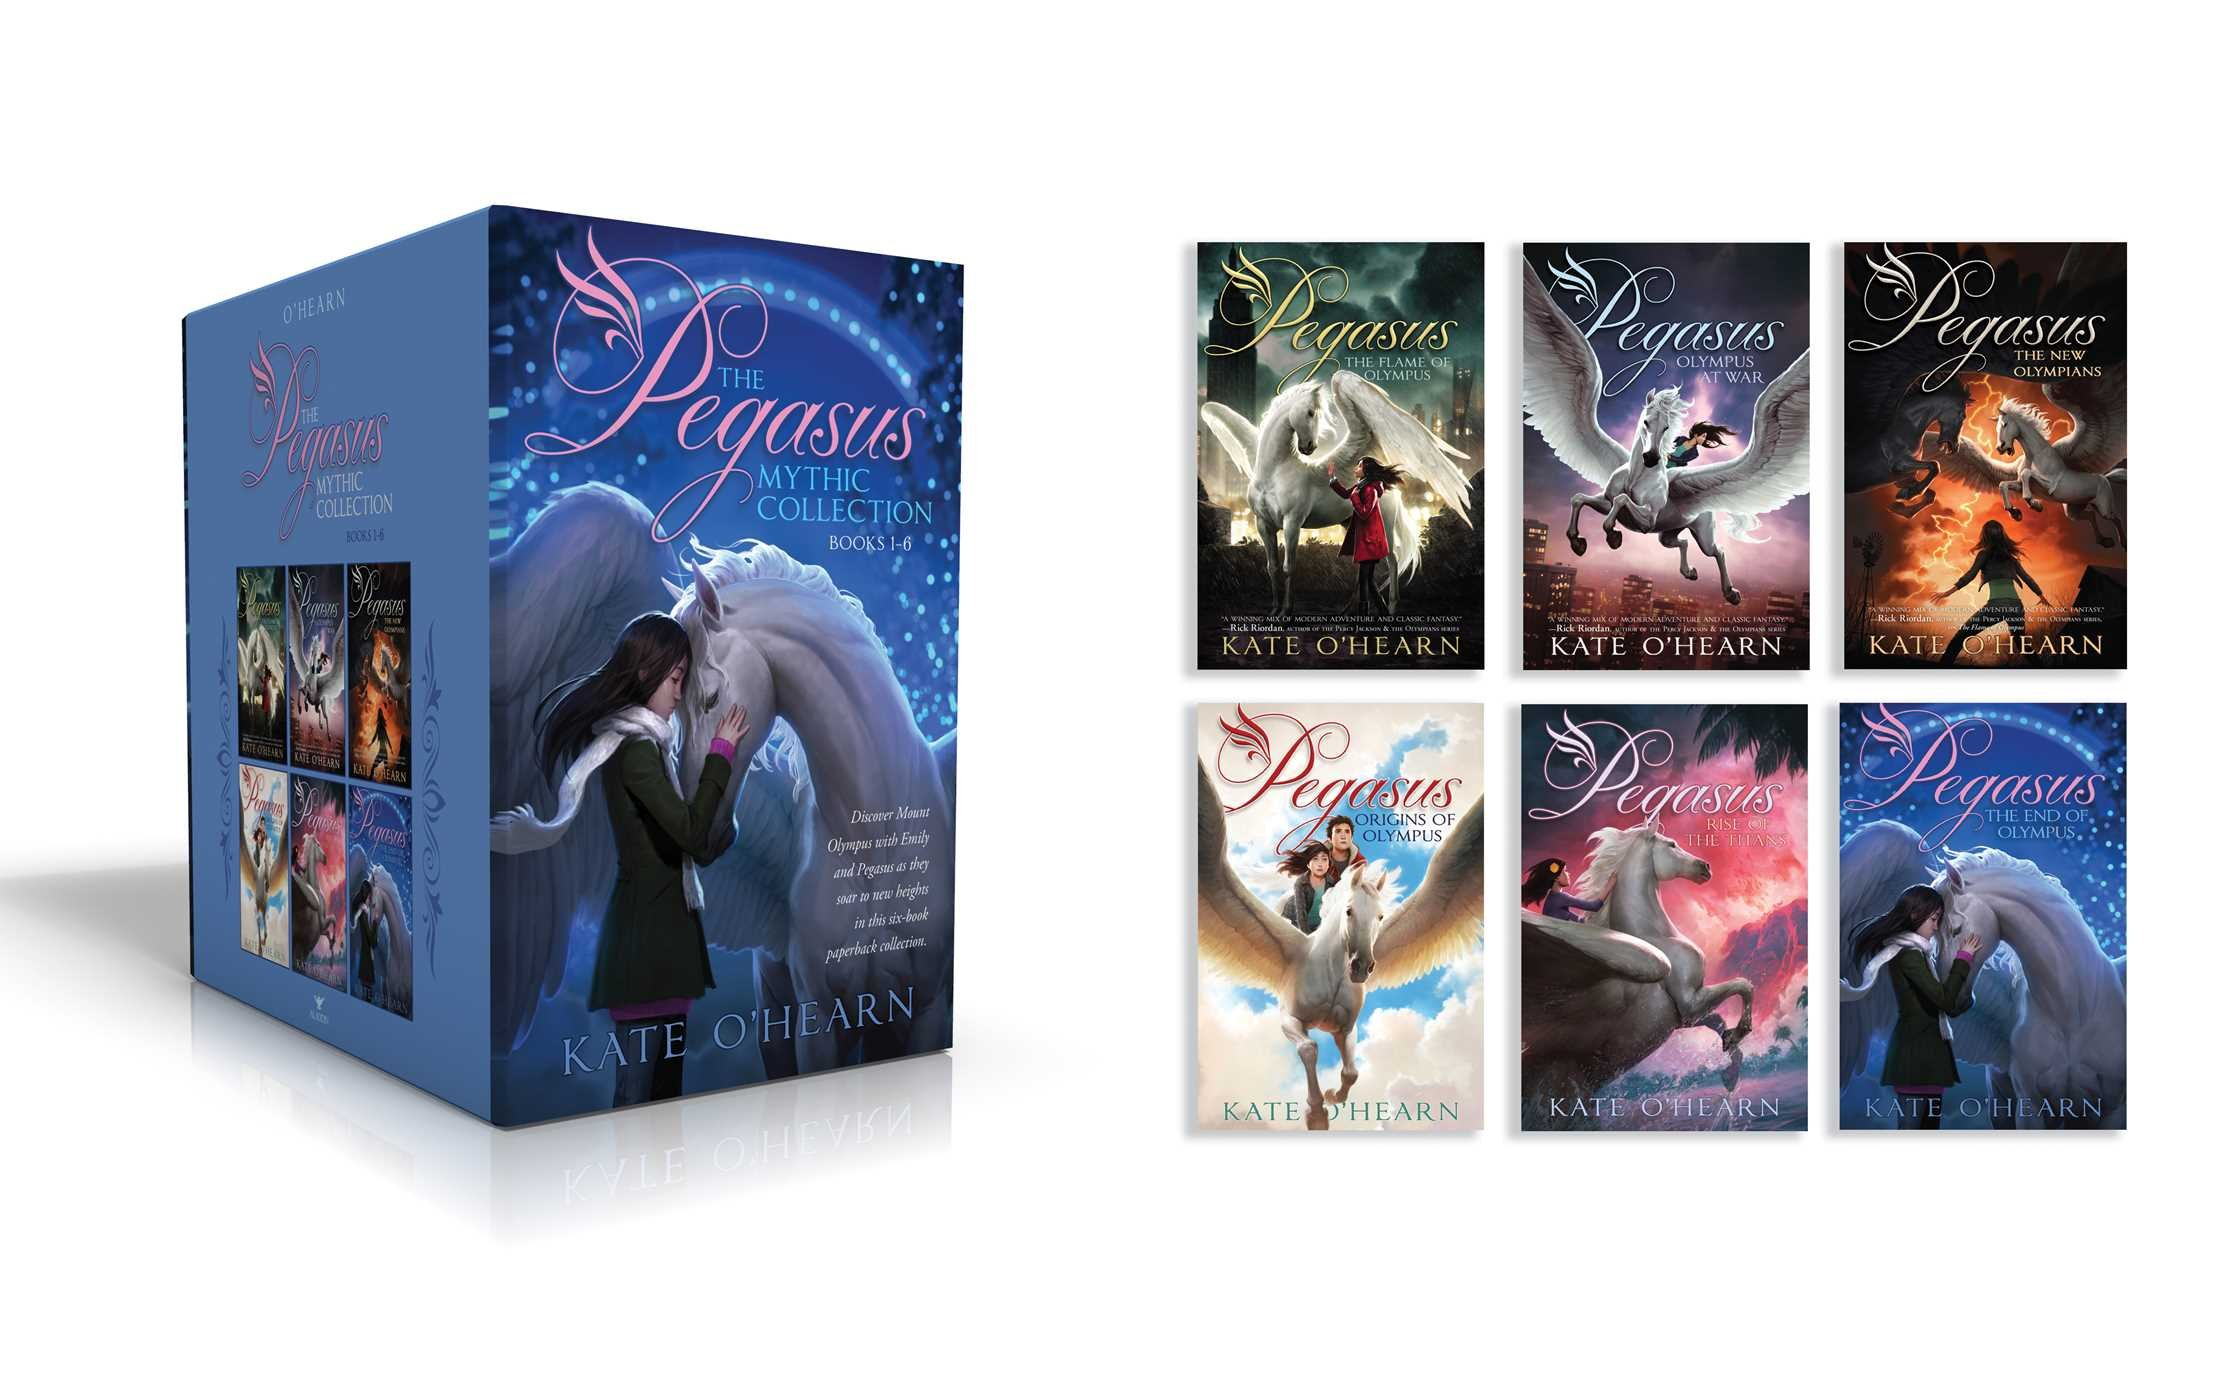 The Pegasus Mythic Collection Books 1-6: The Flame of Olympus; Olympus at War; The New Olympians; Origins of Olympus; Rise of the Titans; The End of Olympus by Aladdin (Image #2)